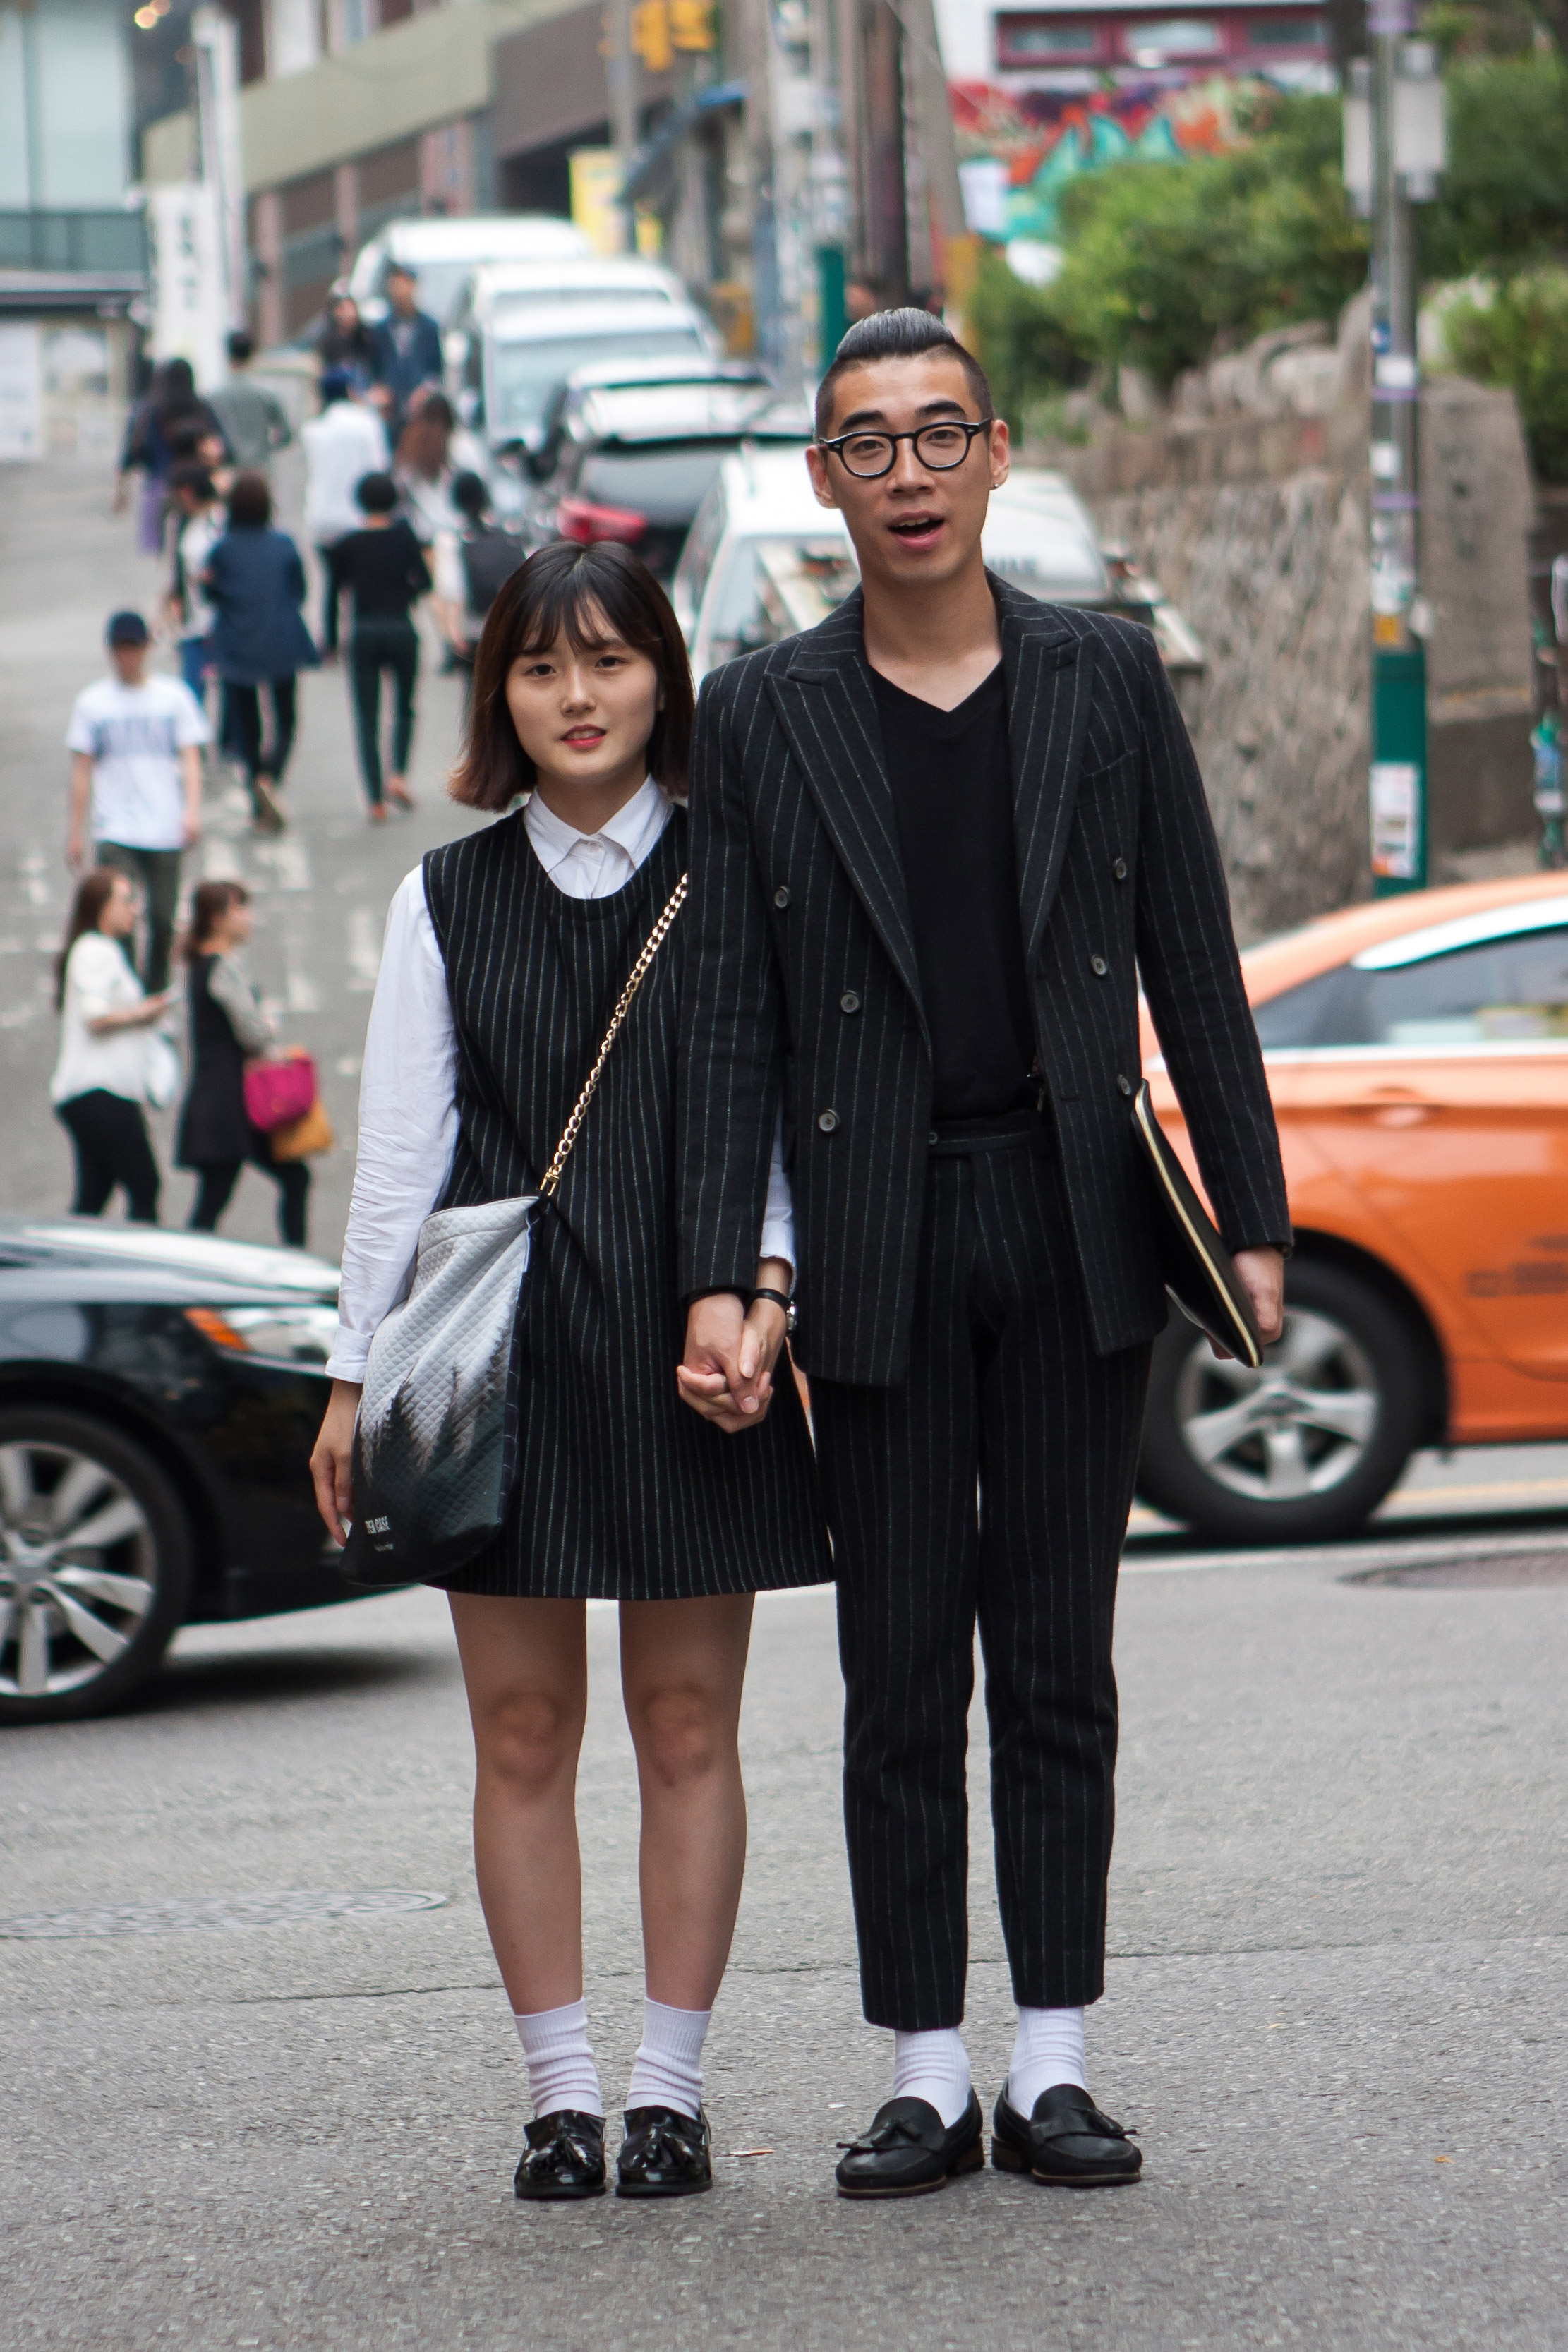 seoul-fashion-week-macthing-couples-street-style-01